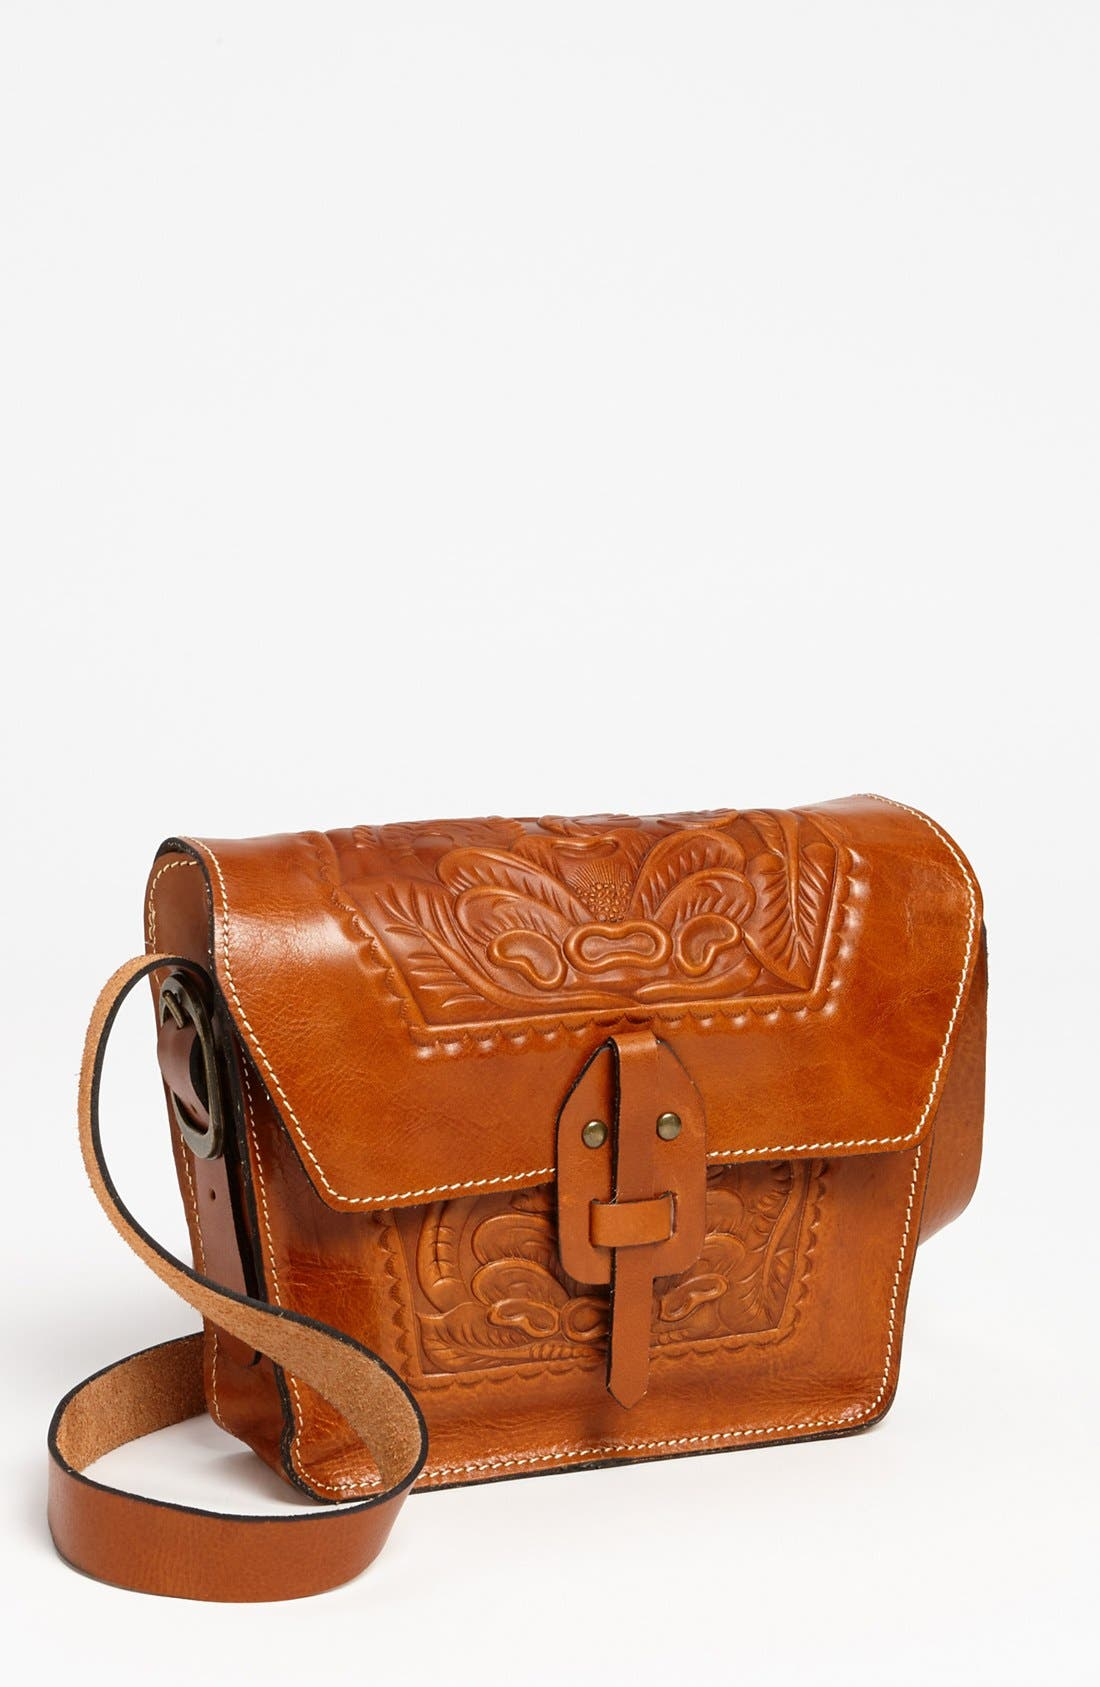 'Marciano' Leather Crossbody Bag, Main, color, 200